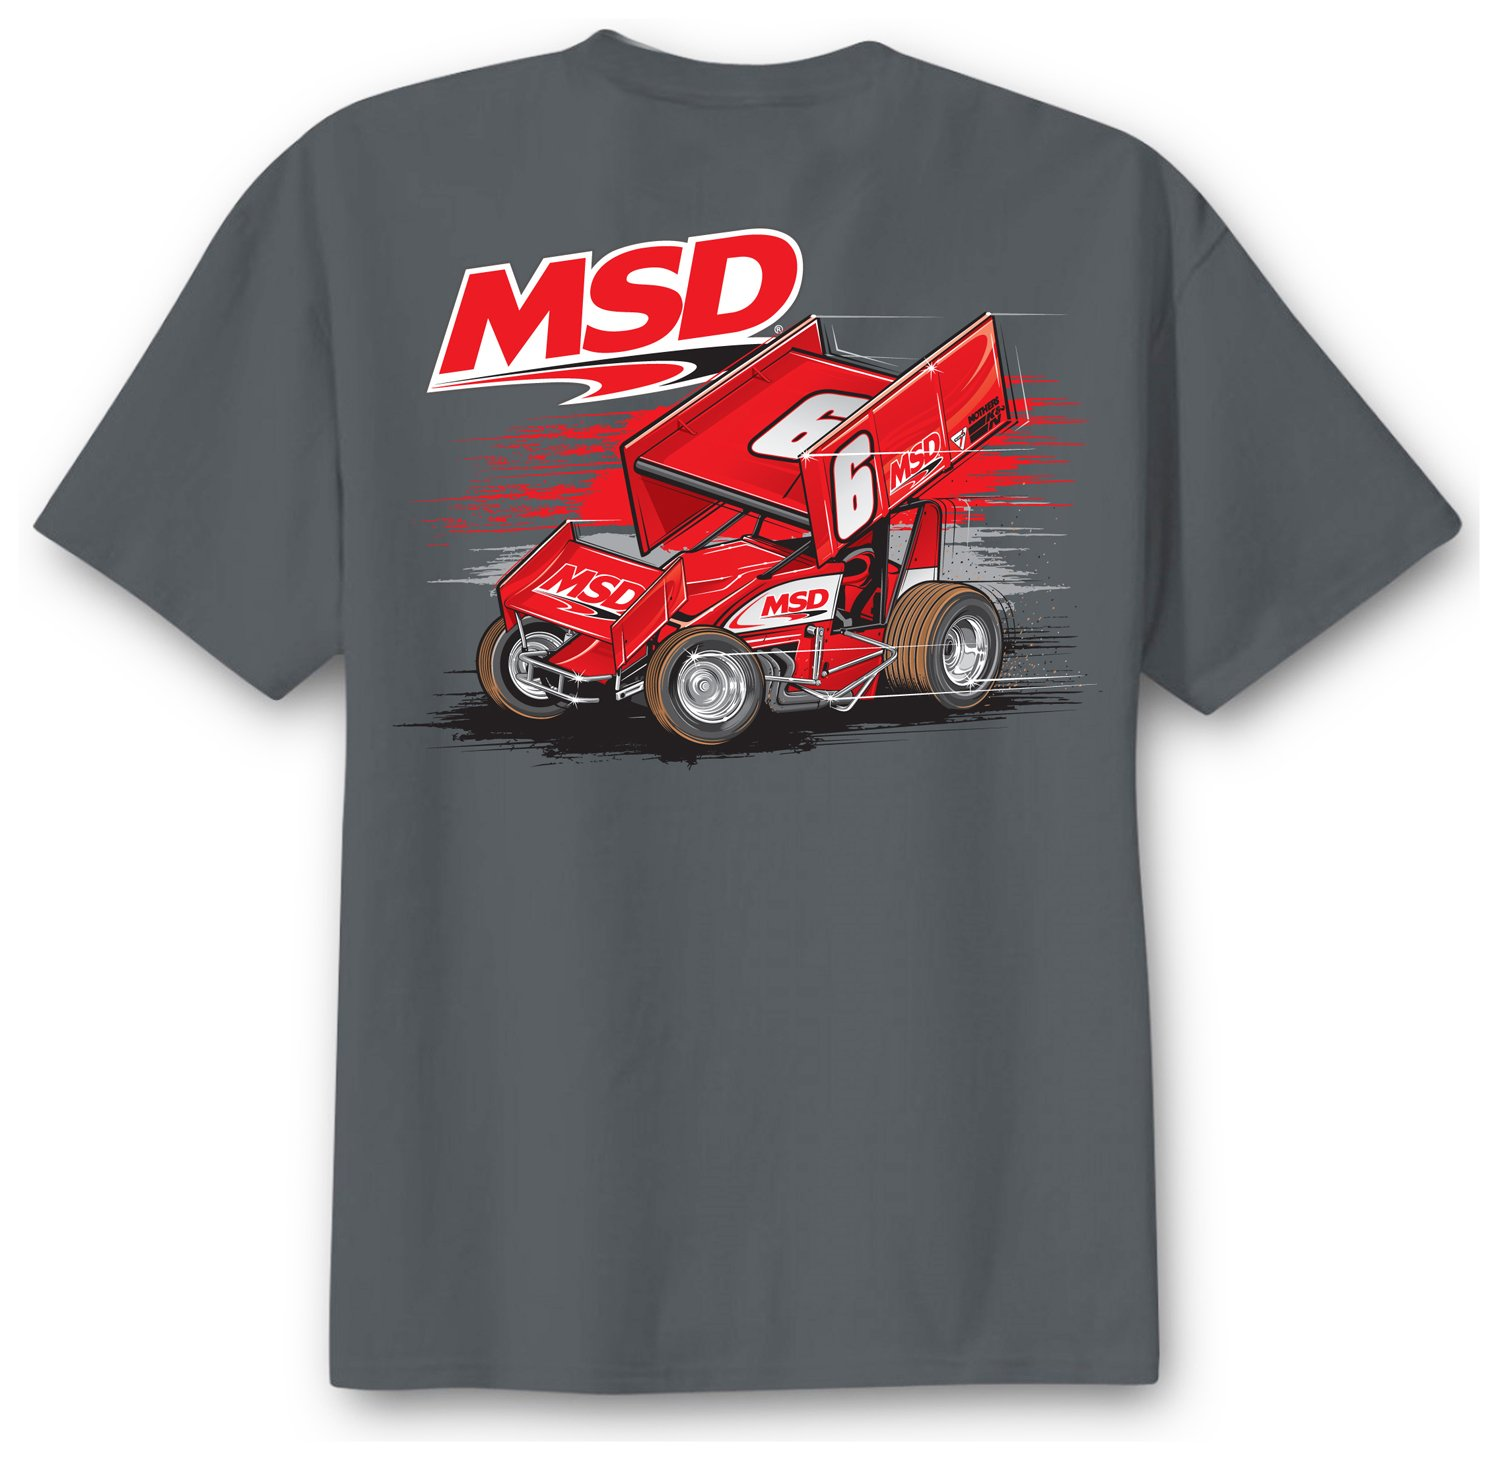 95134 - MSD Sprint Car T-Shirt, Gray, X-Large Image